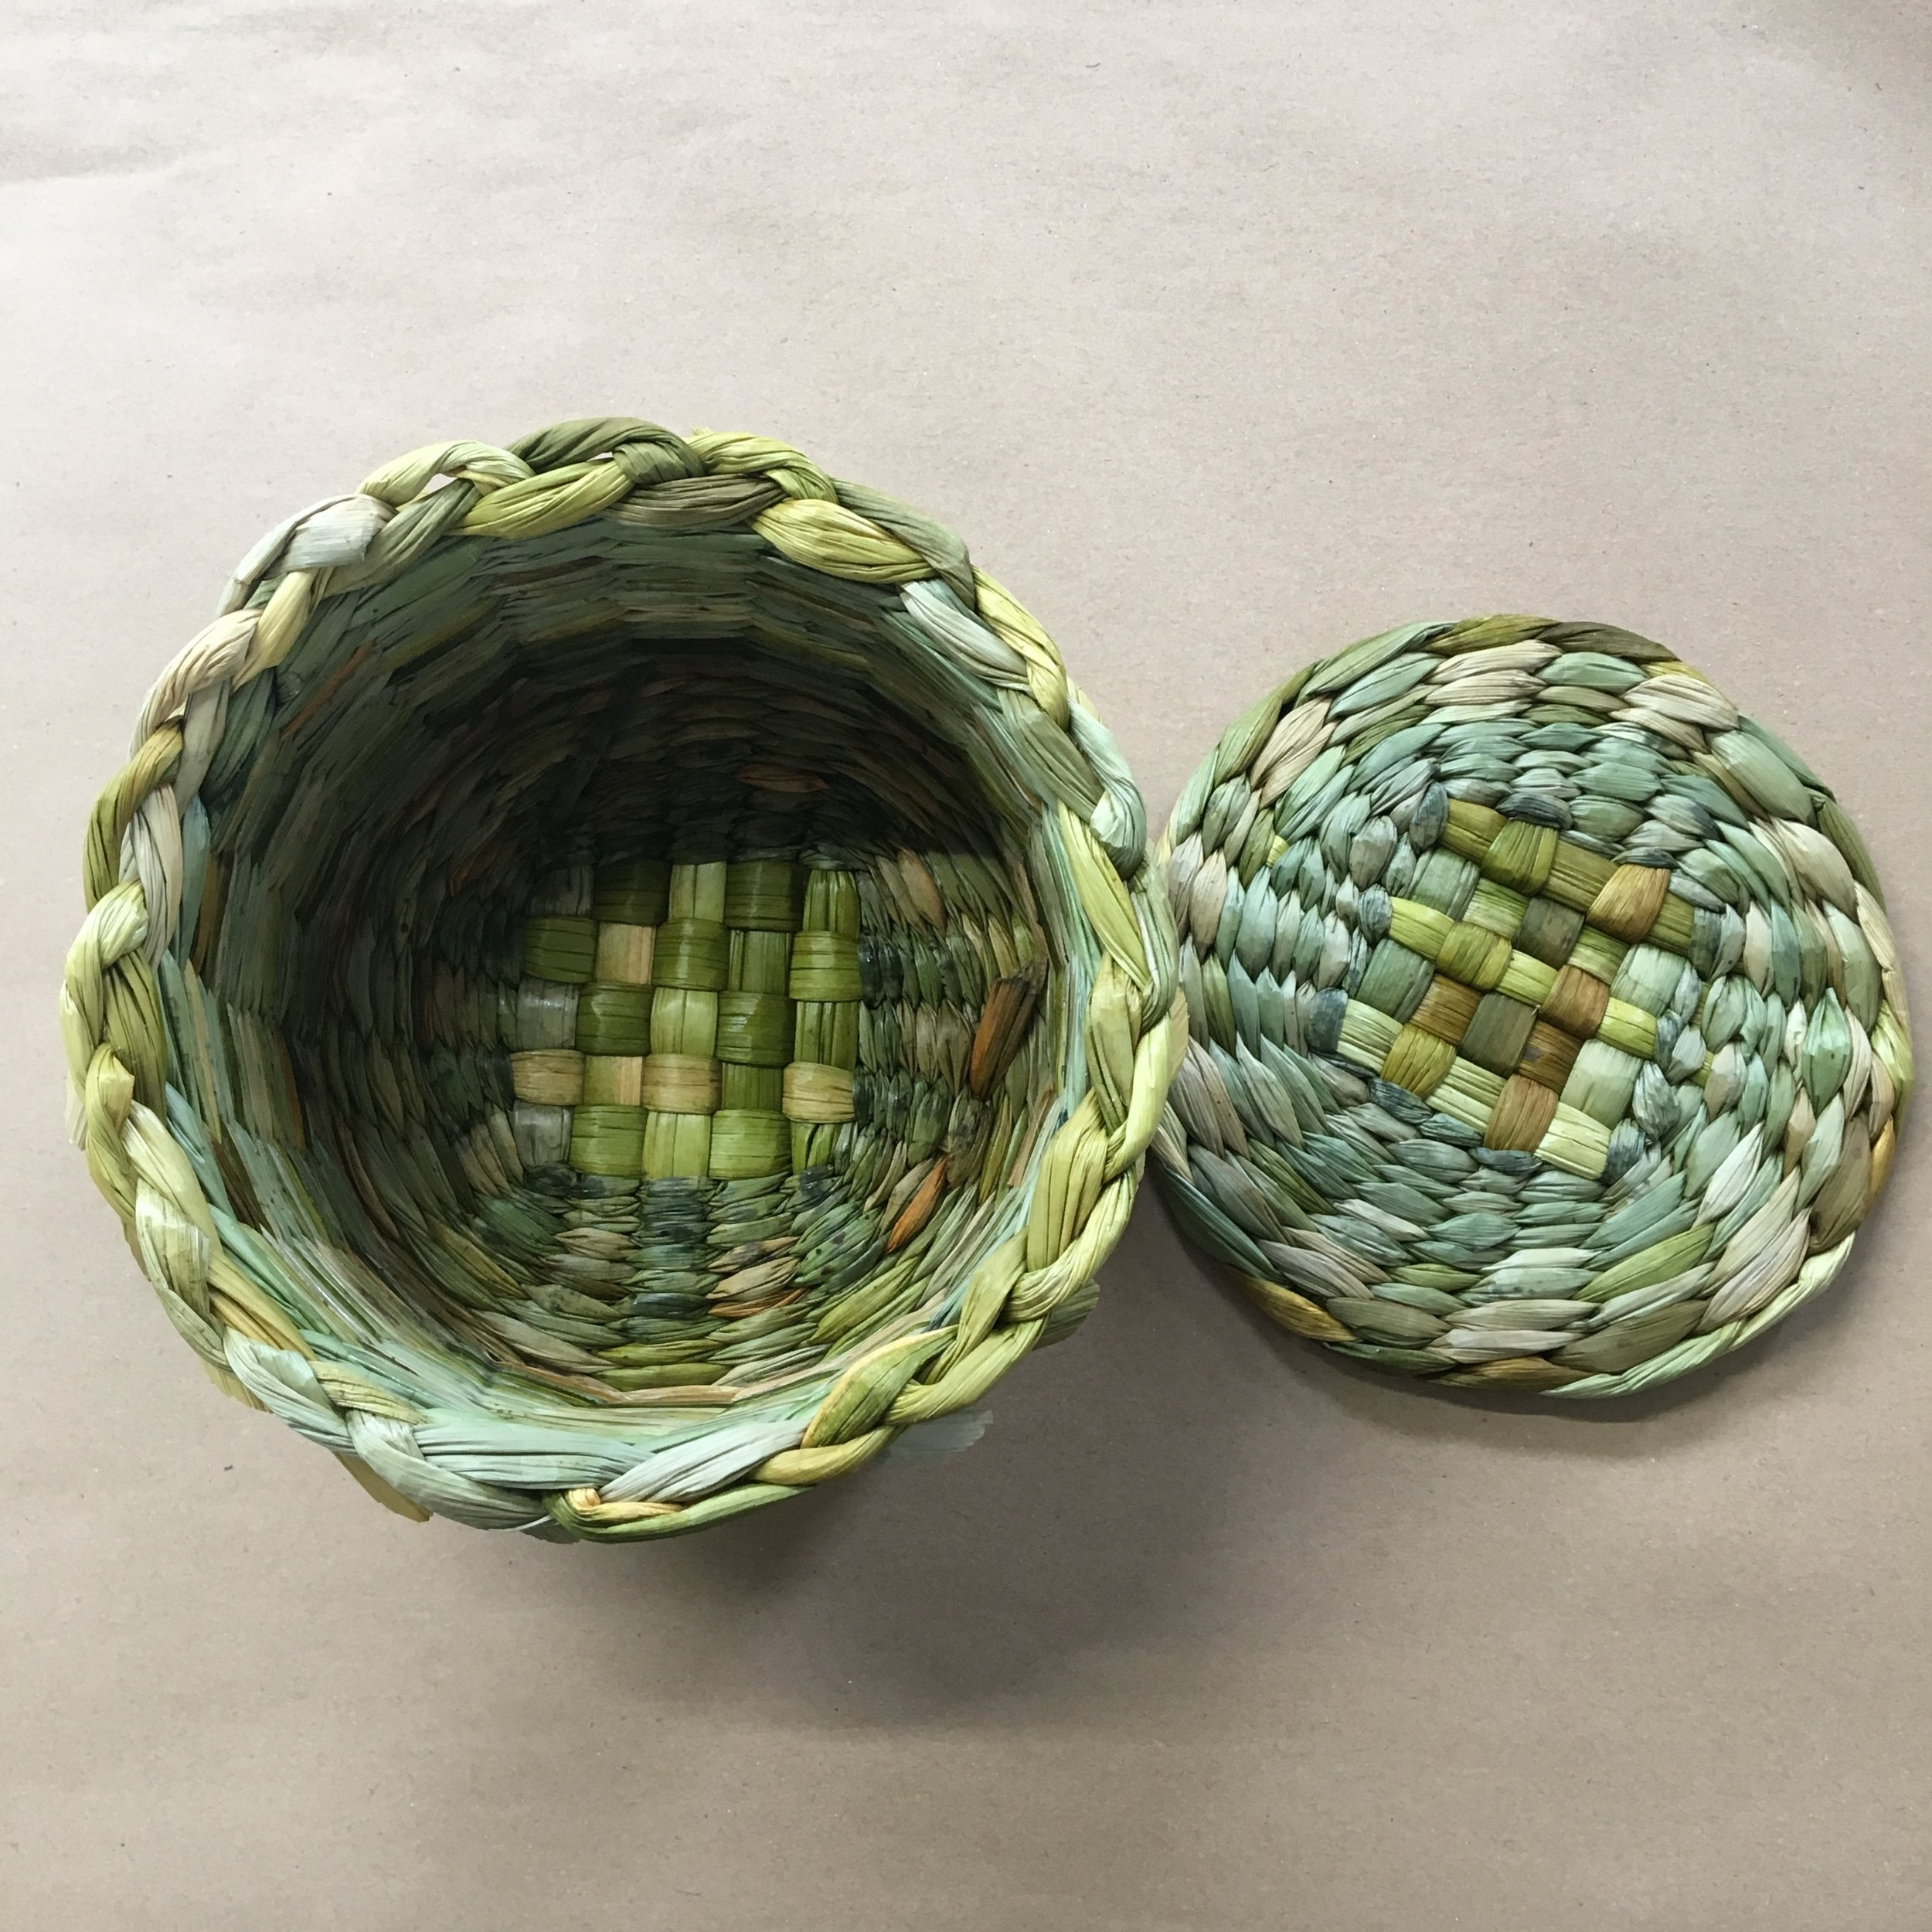 Basketmaking-8.jpg